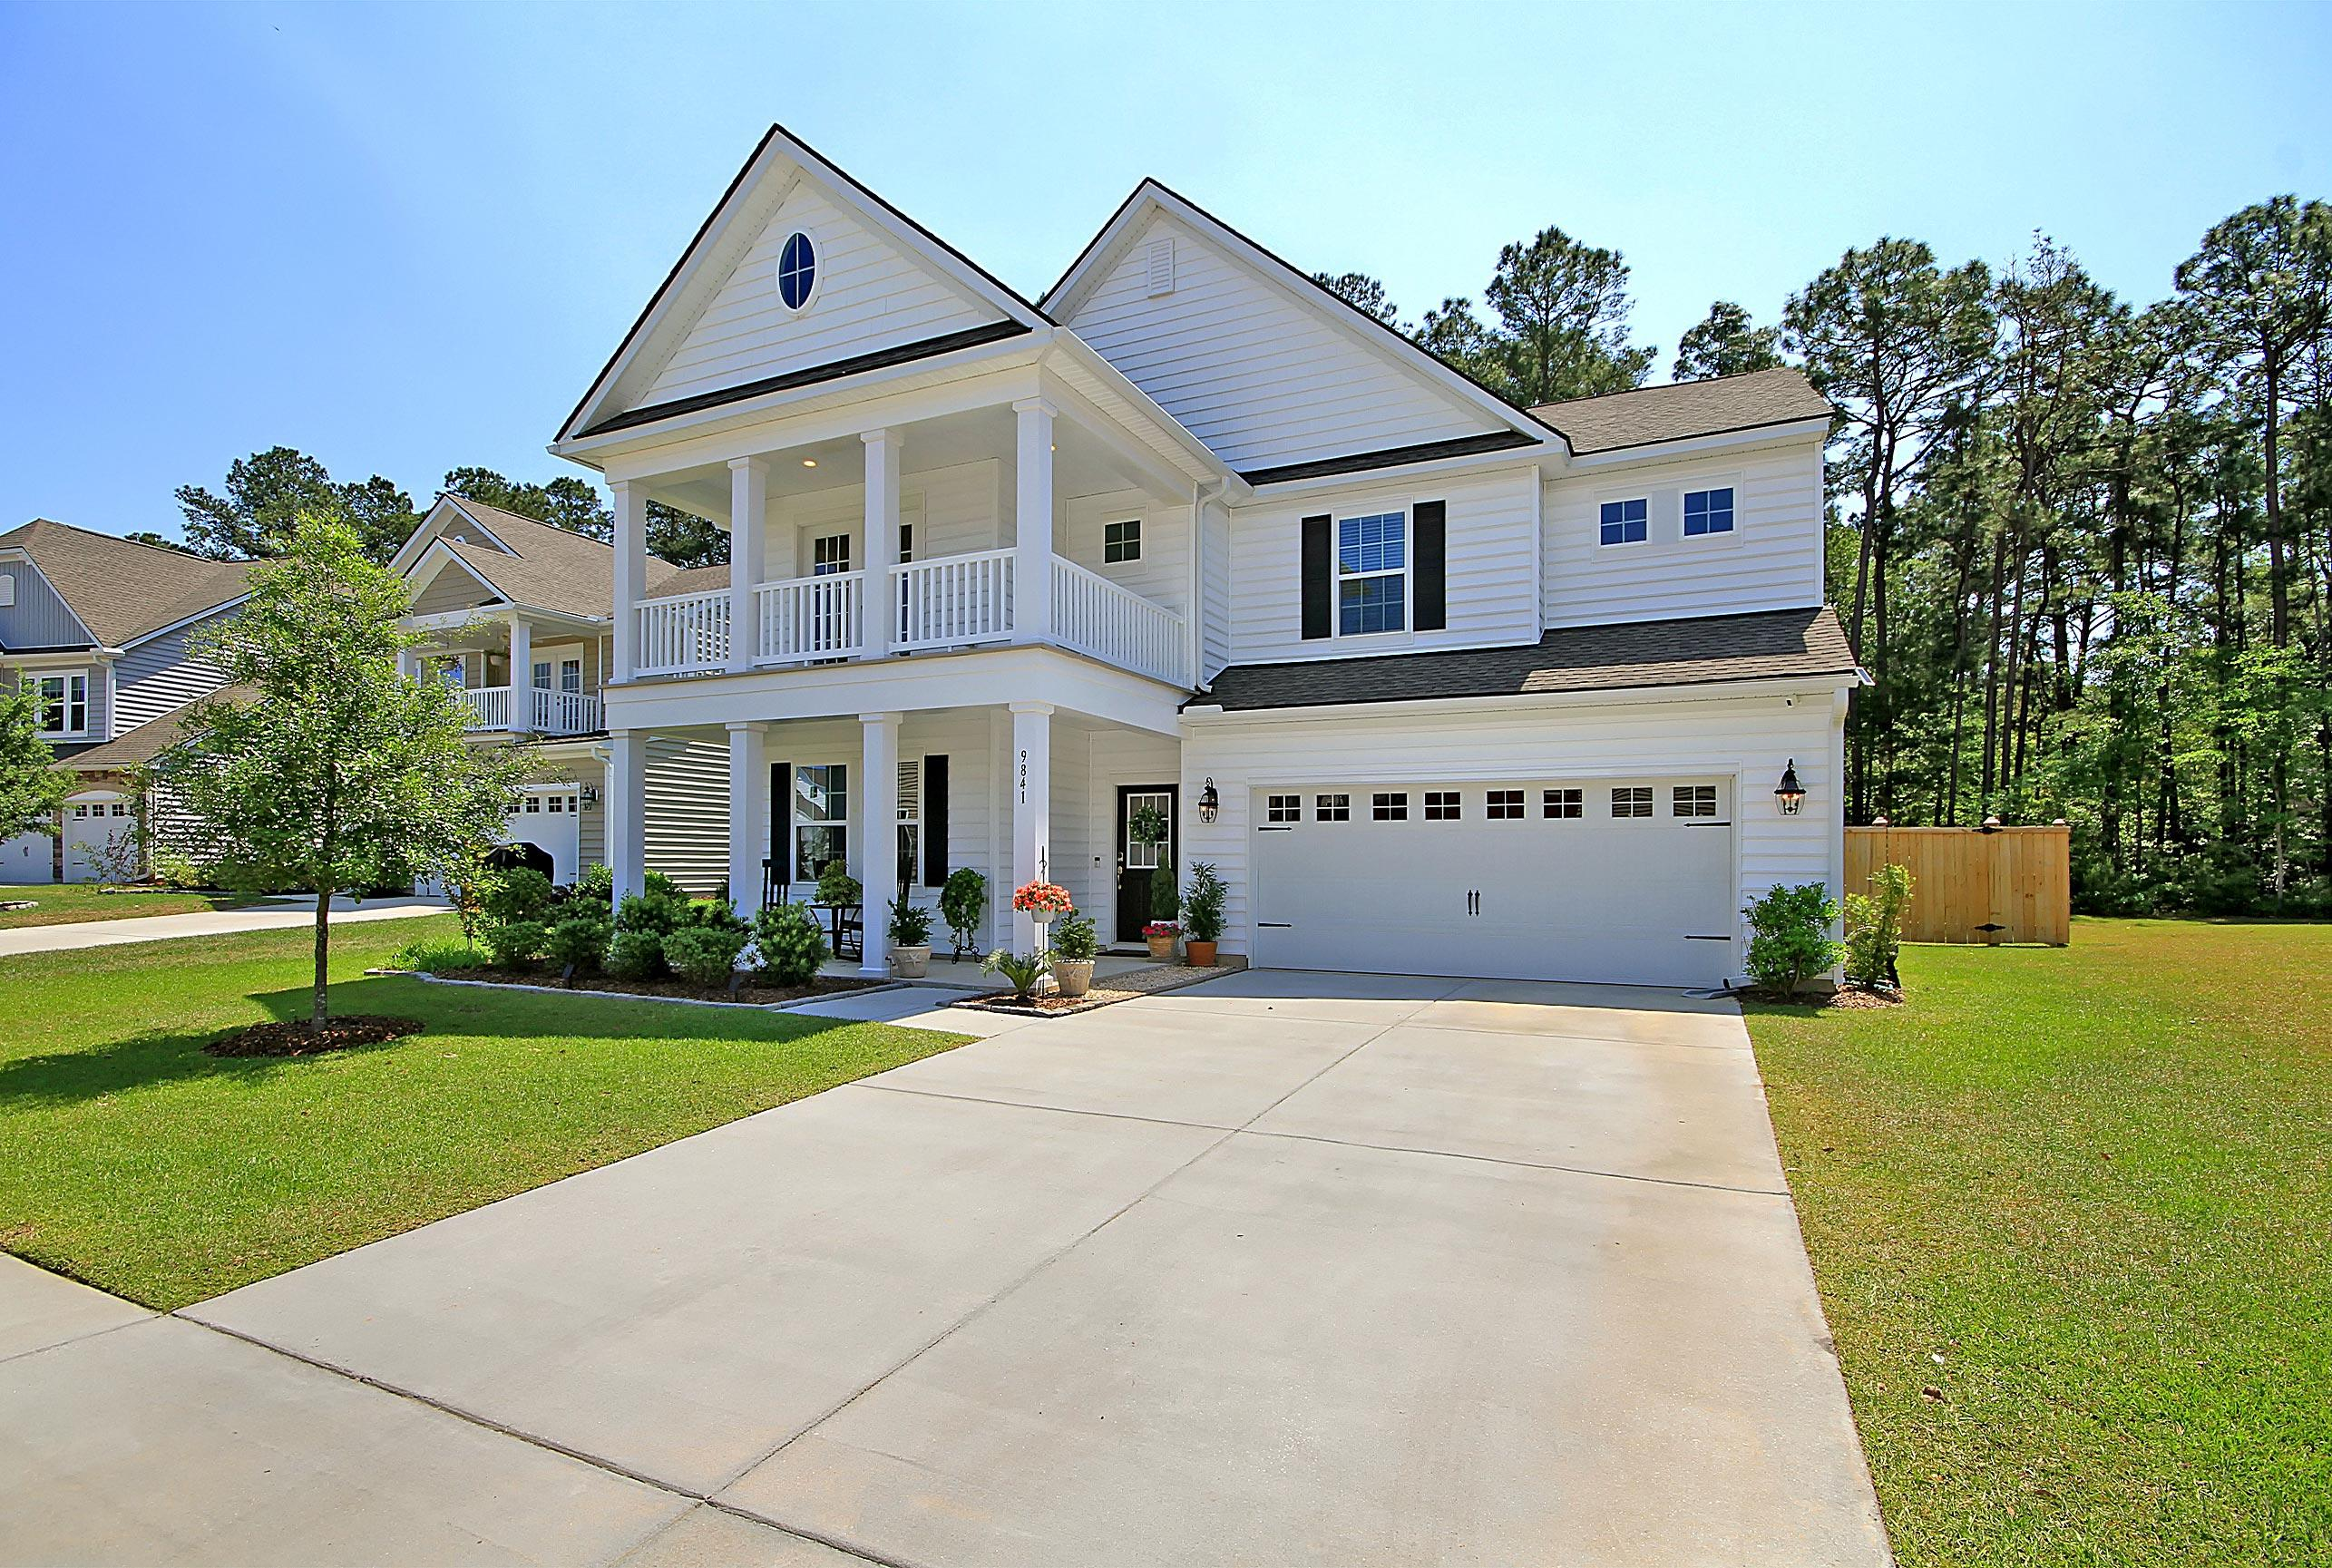 9841 English Elm St Ladson, SC 29456